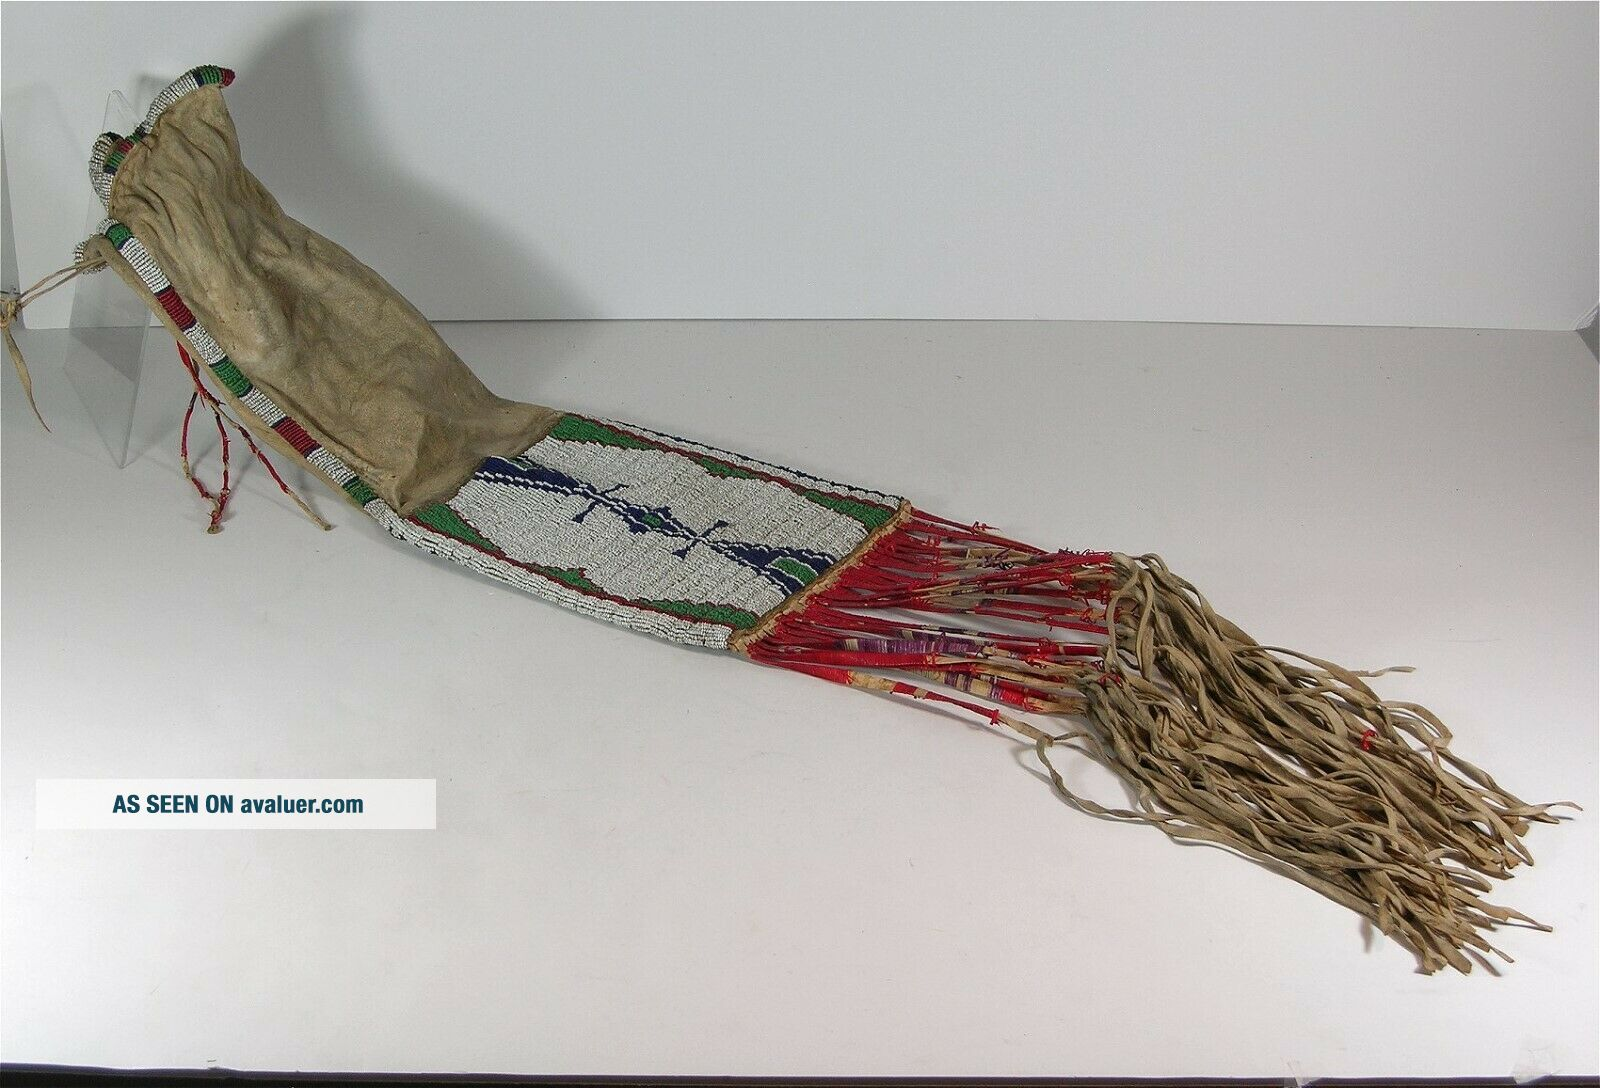 ca1880s NATIVE AMERICAN SIOUX INDIAN BEAD DECORATED HIDE TOBACCO BAG BEADED BAG